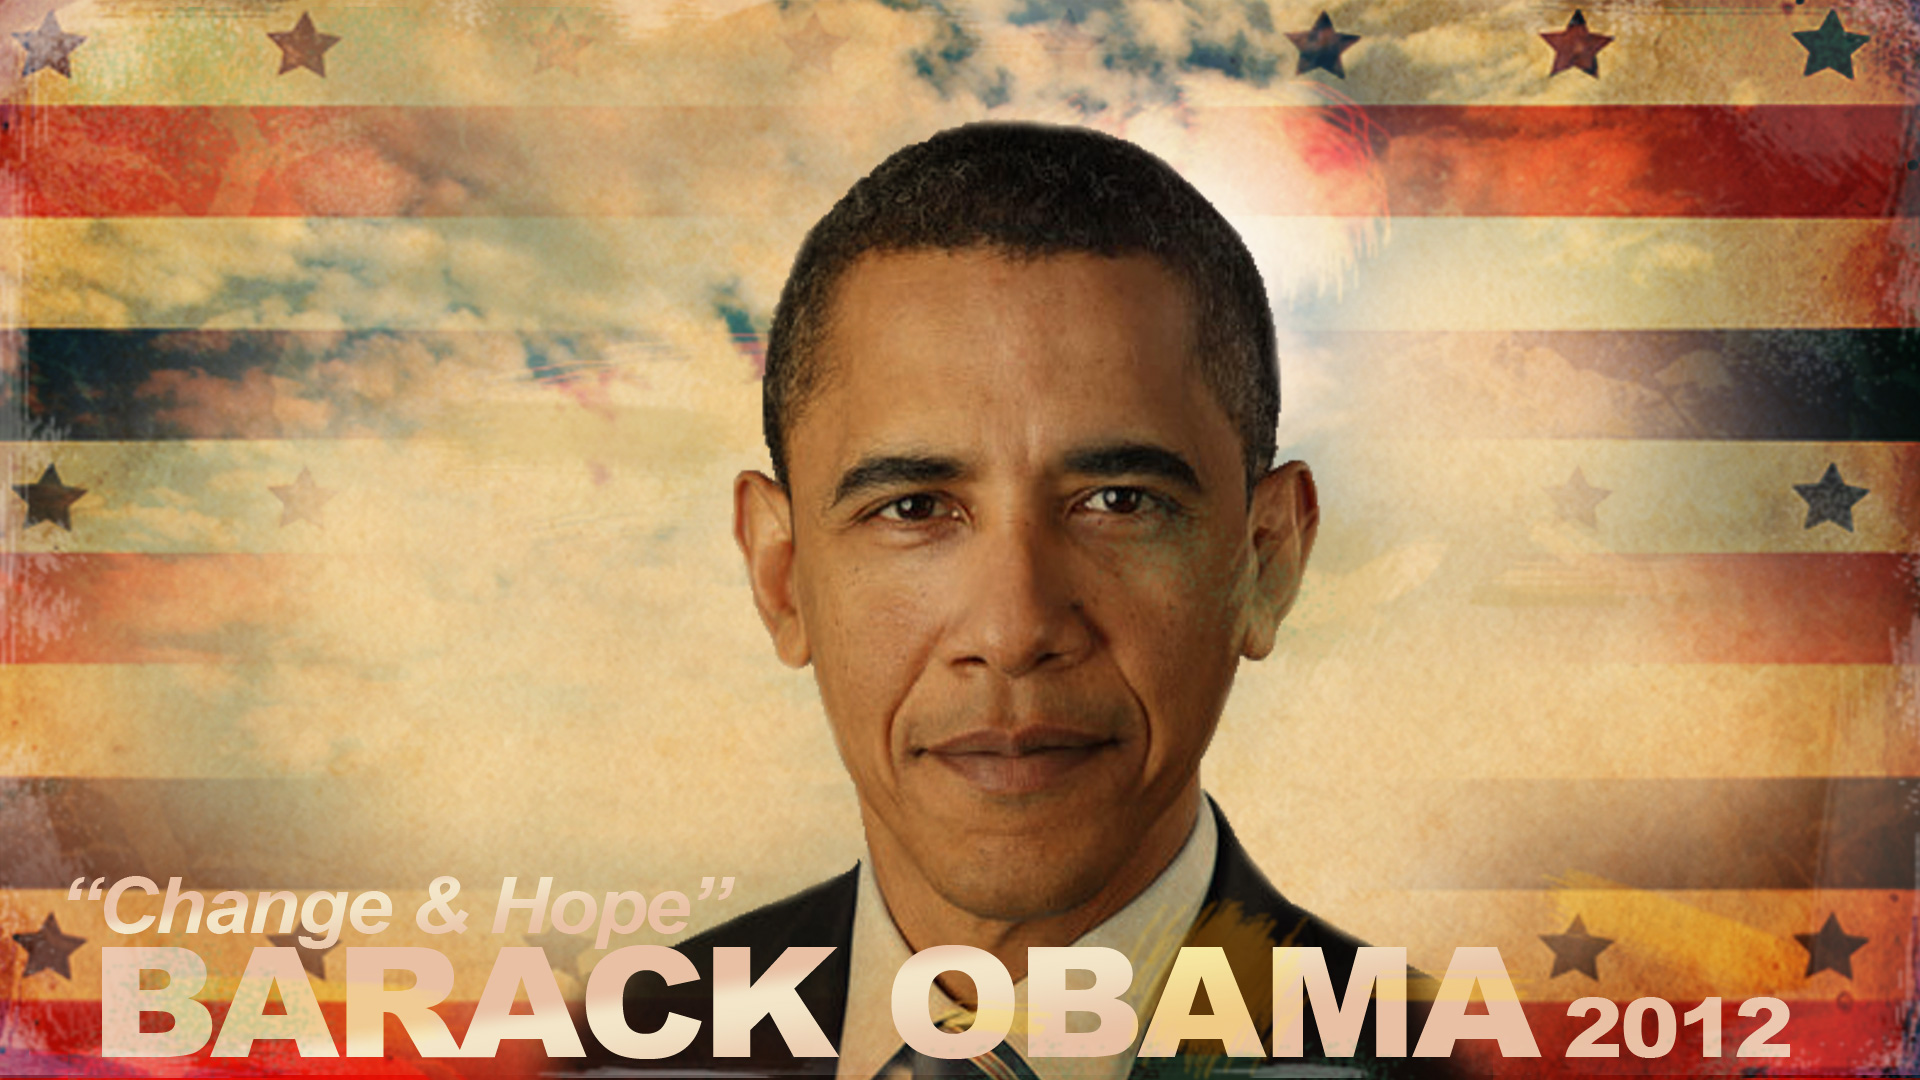 Barrack Obama Wallpapers 1920x1080